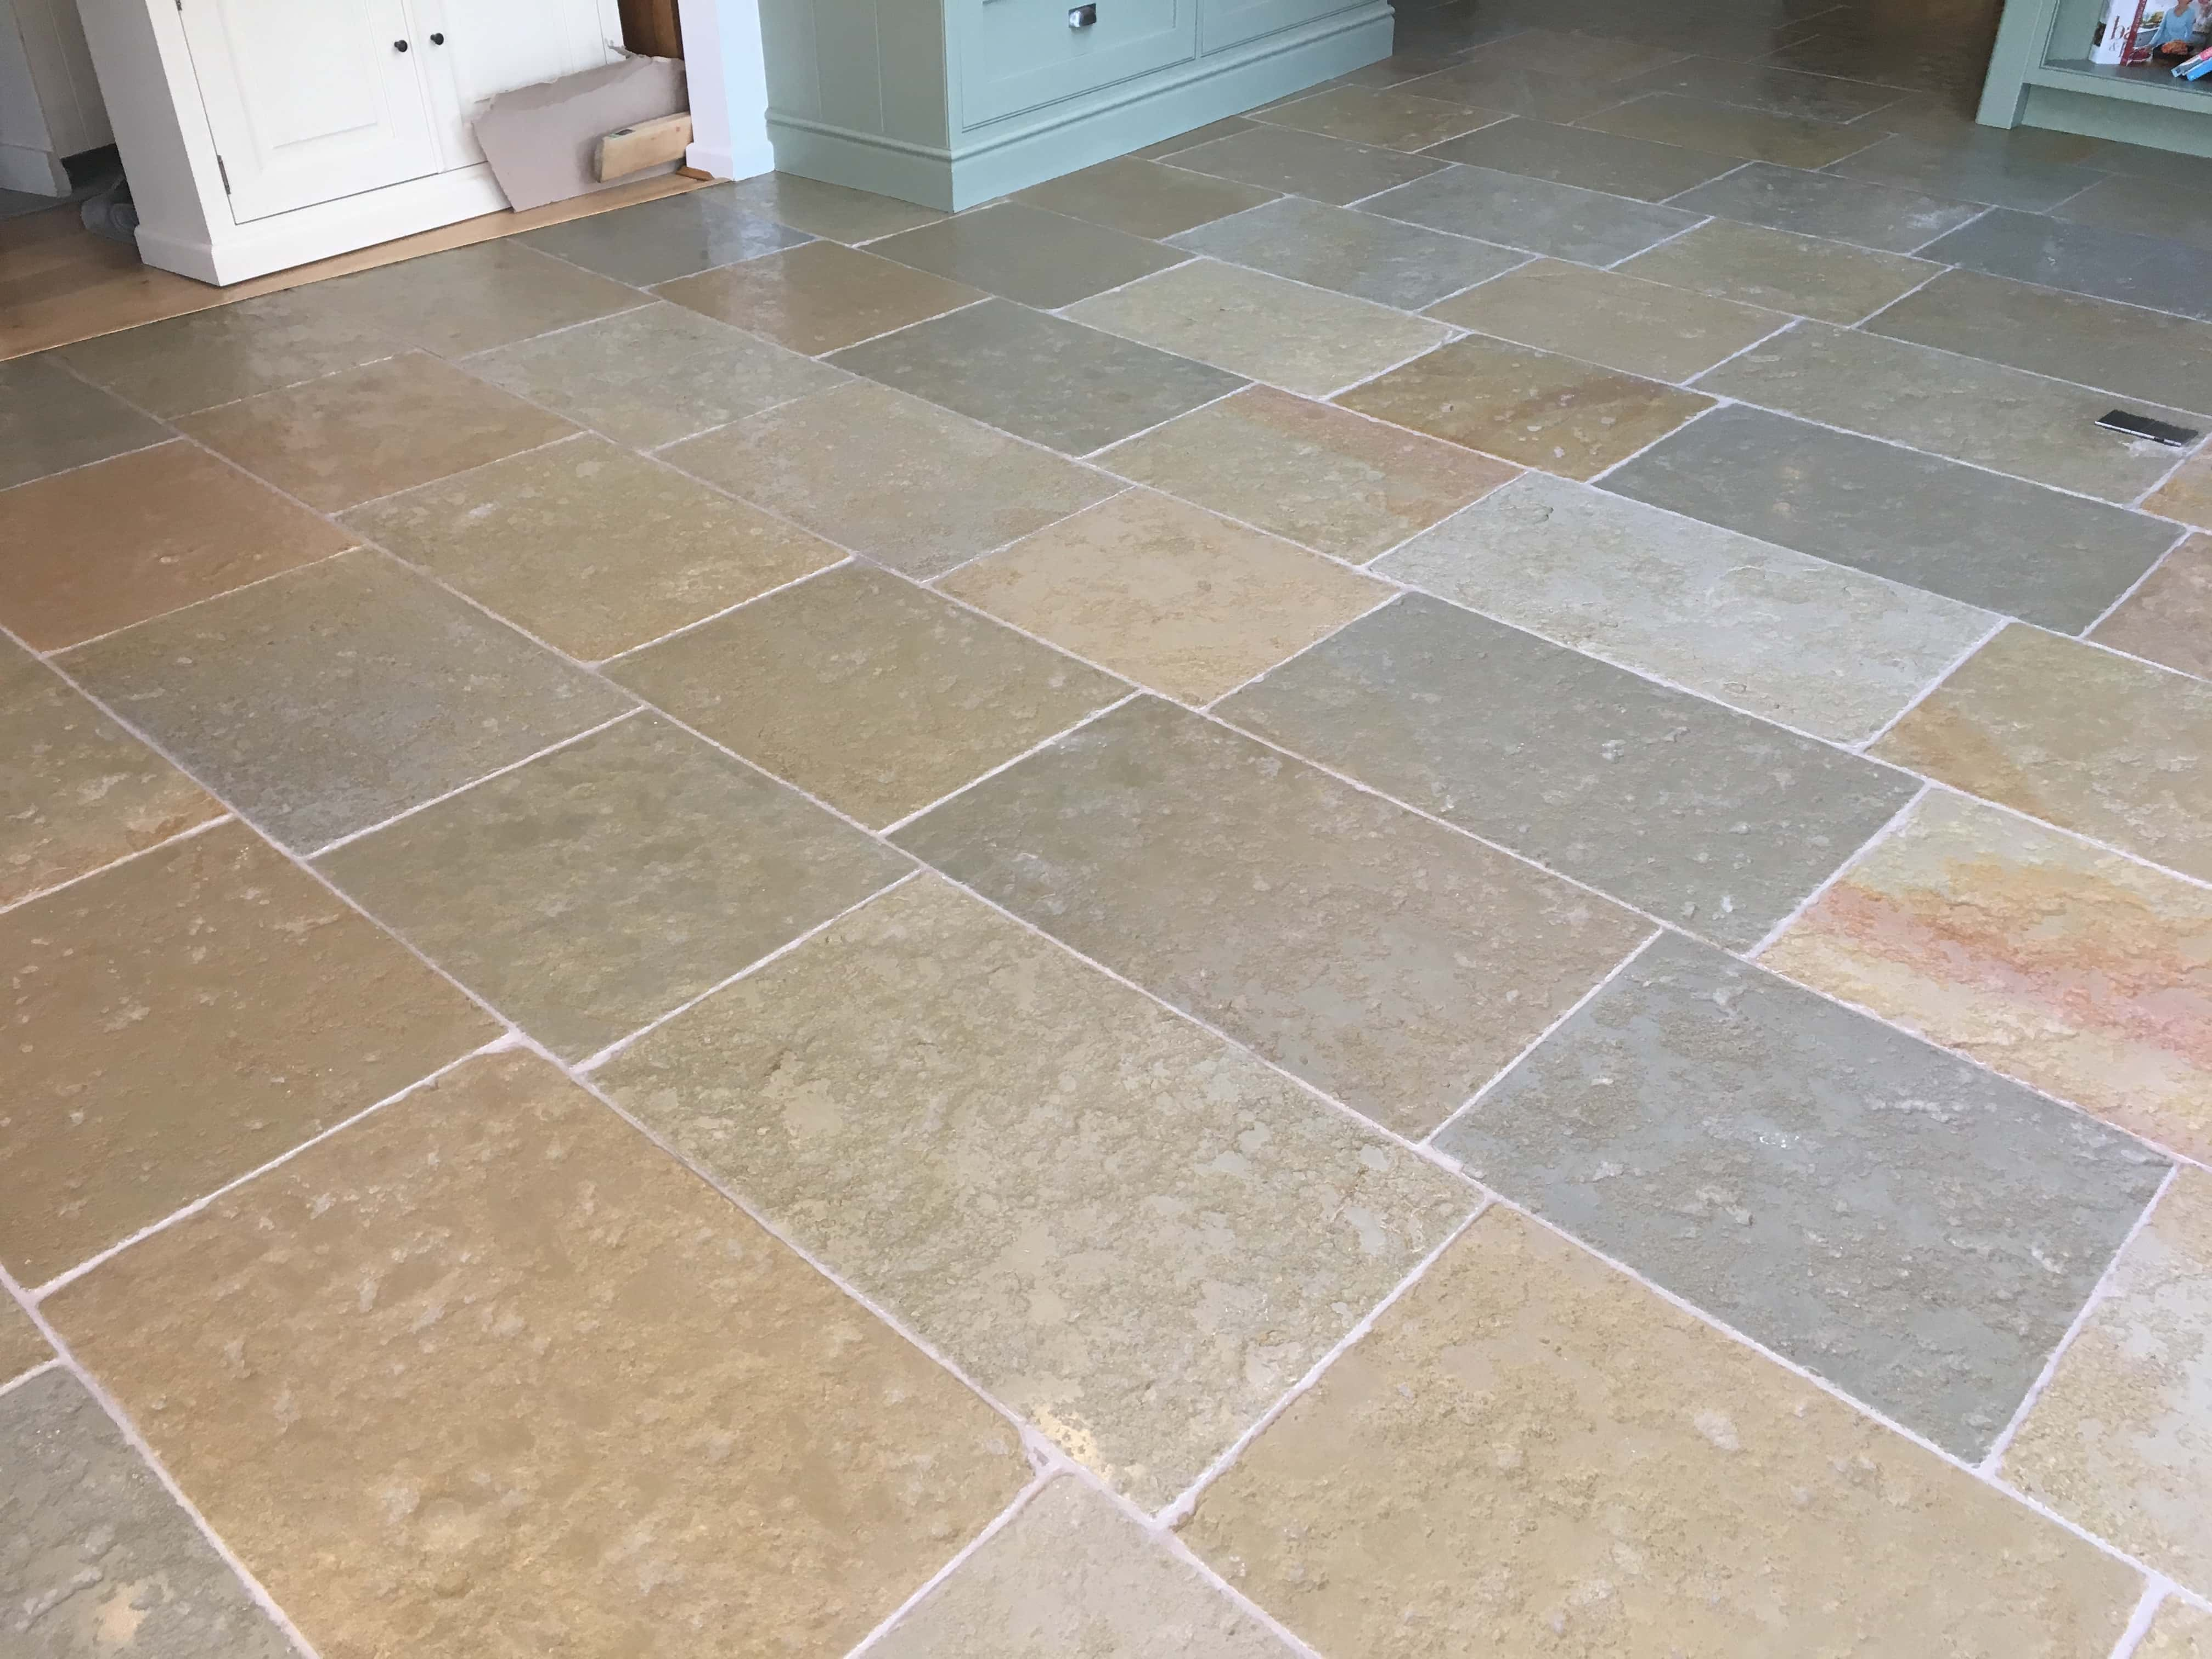 Sandstone Kitchen Floor After Cleaning Sealing Farnham